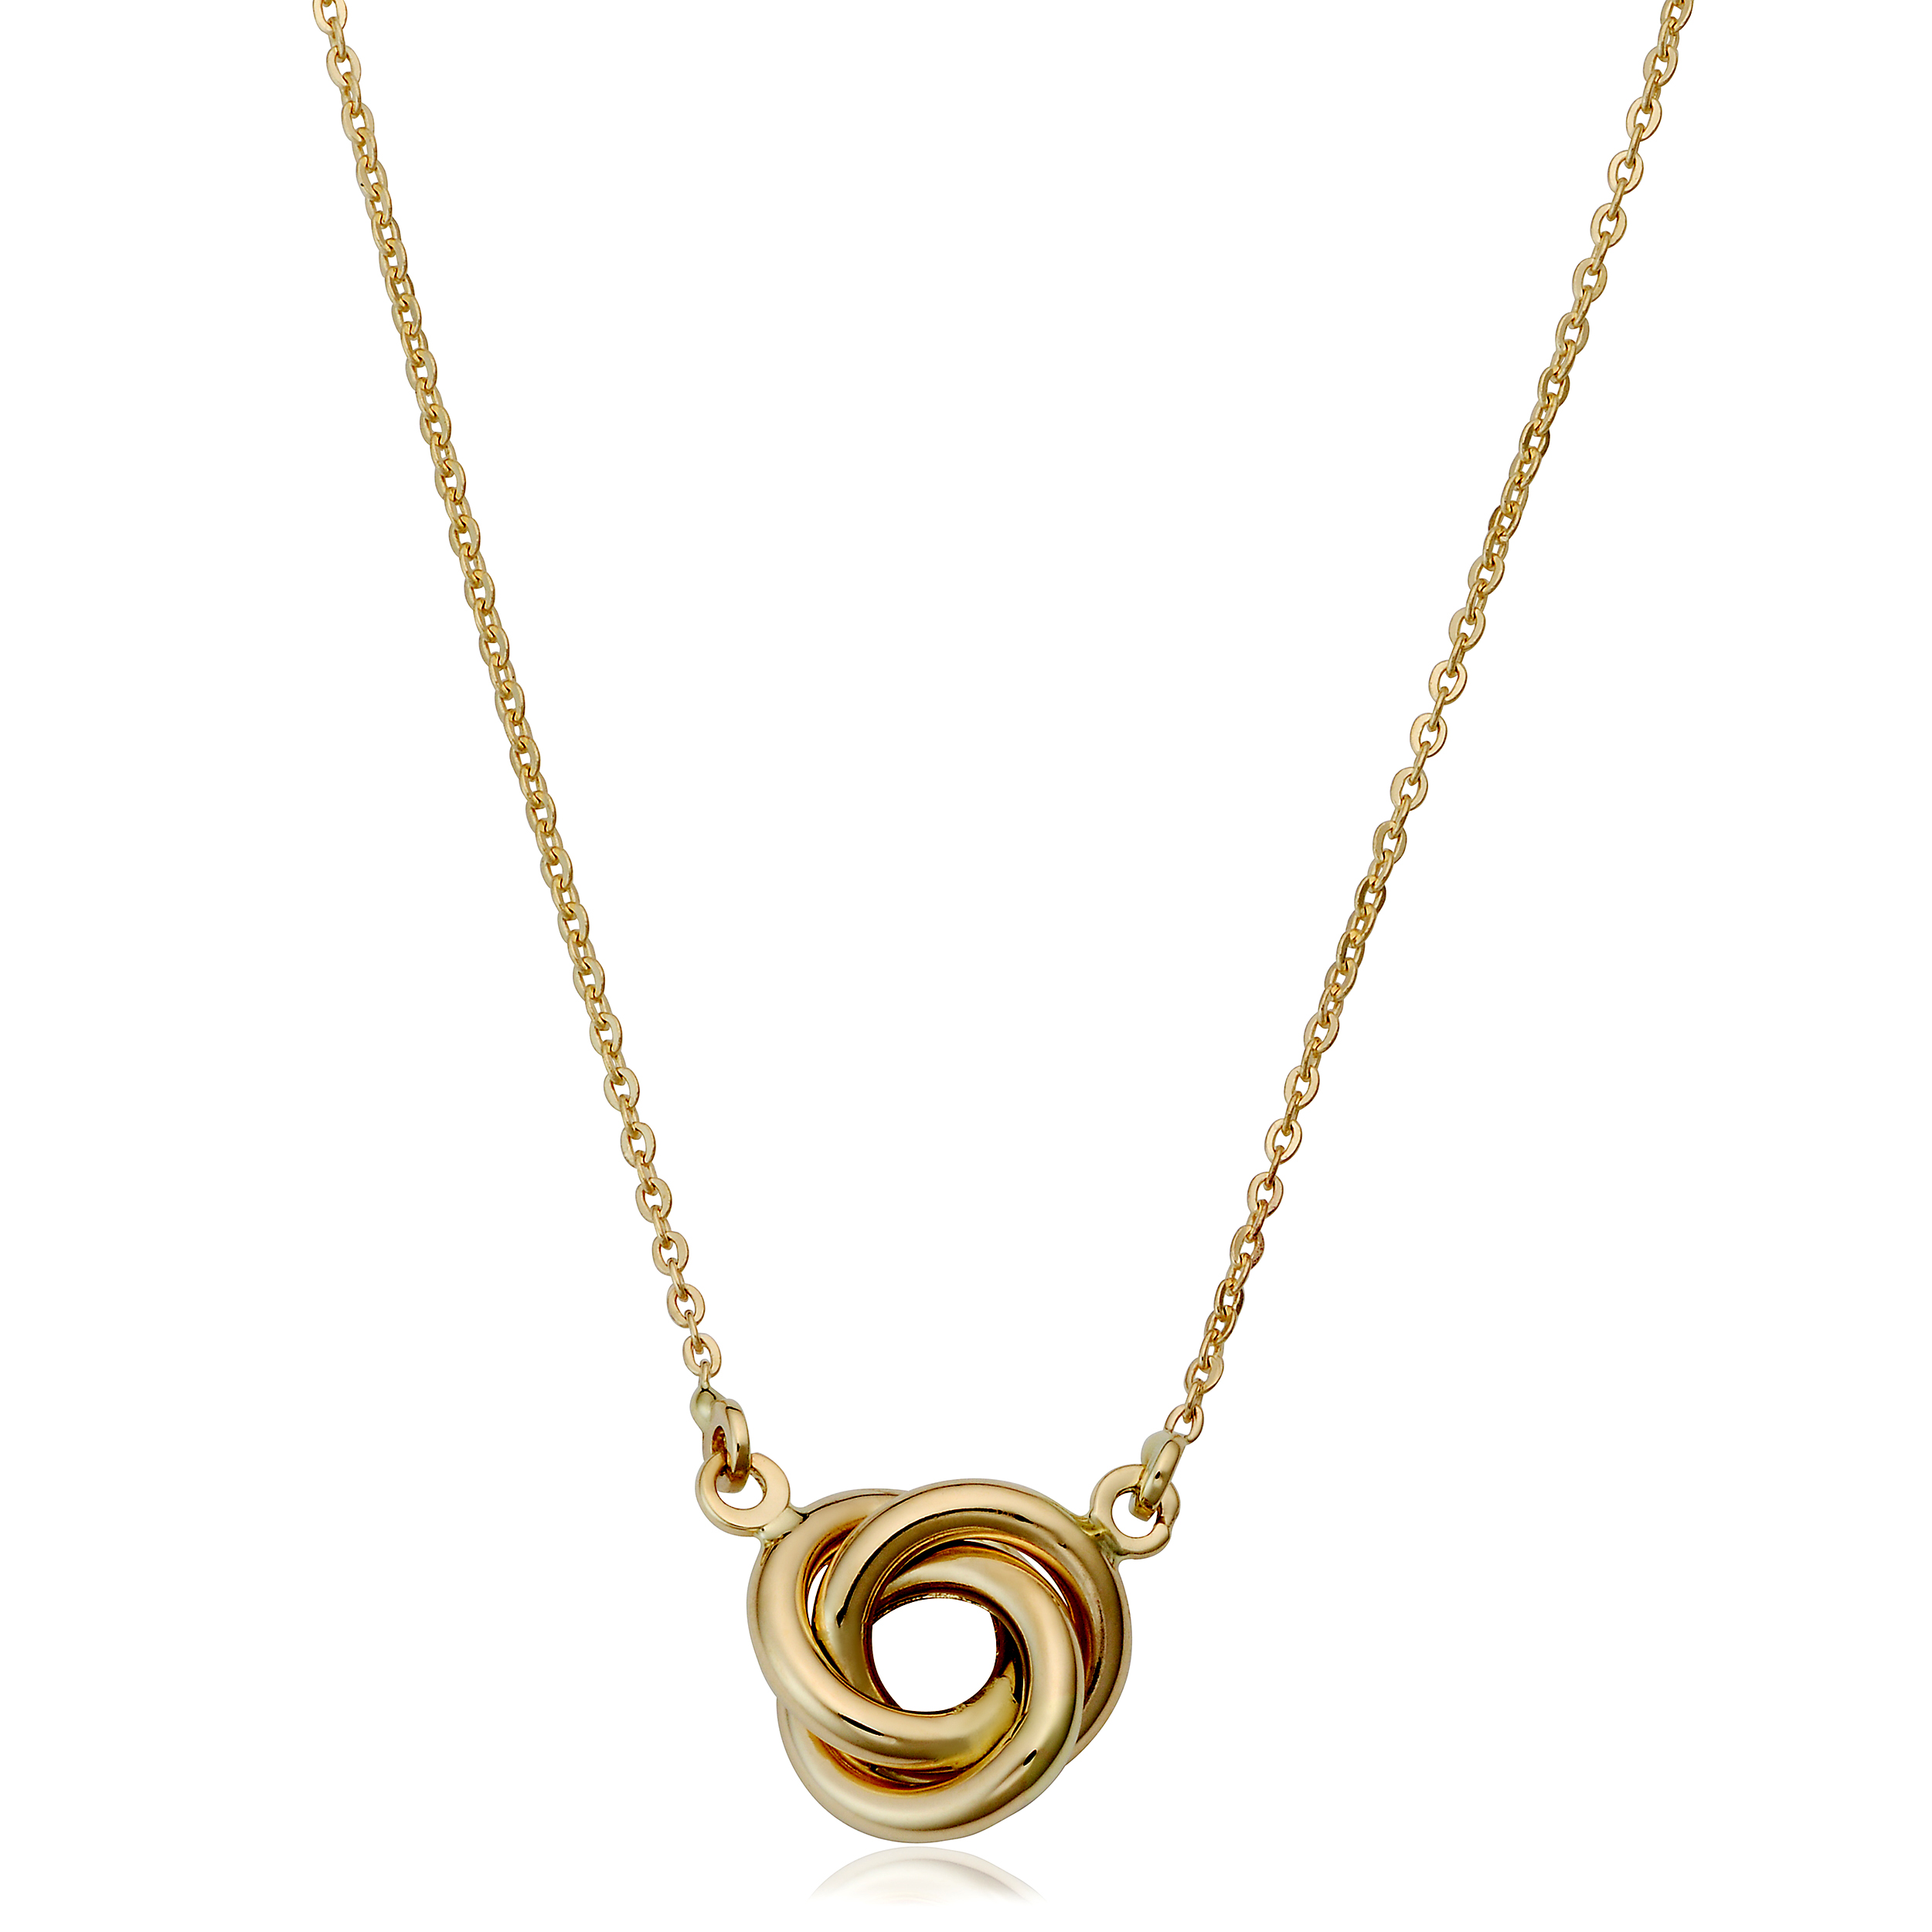 """14K Yellow Gold Love Knot Pendant Necklace, 17"""" - image 1 of 1"""